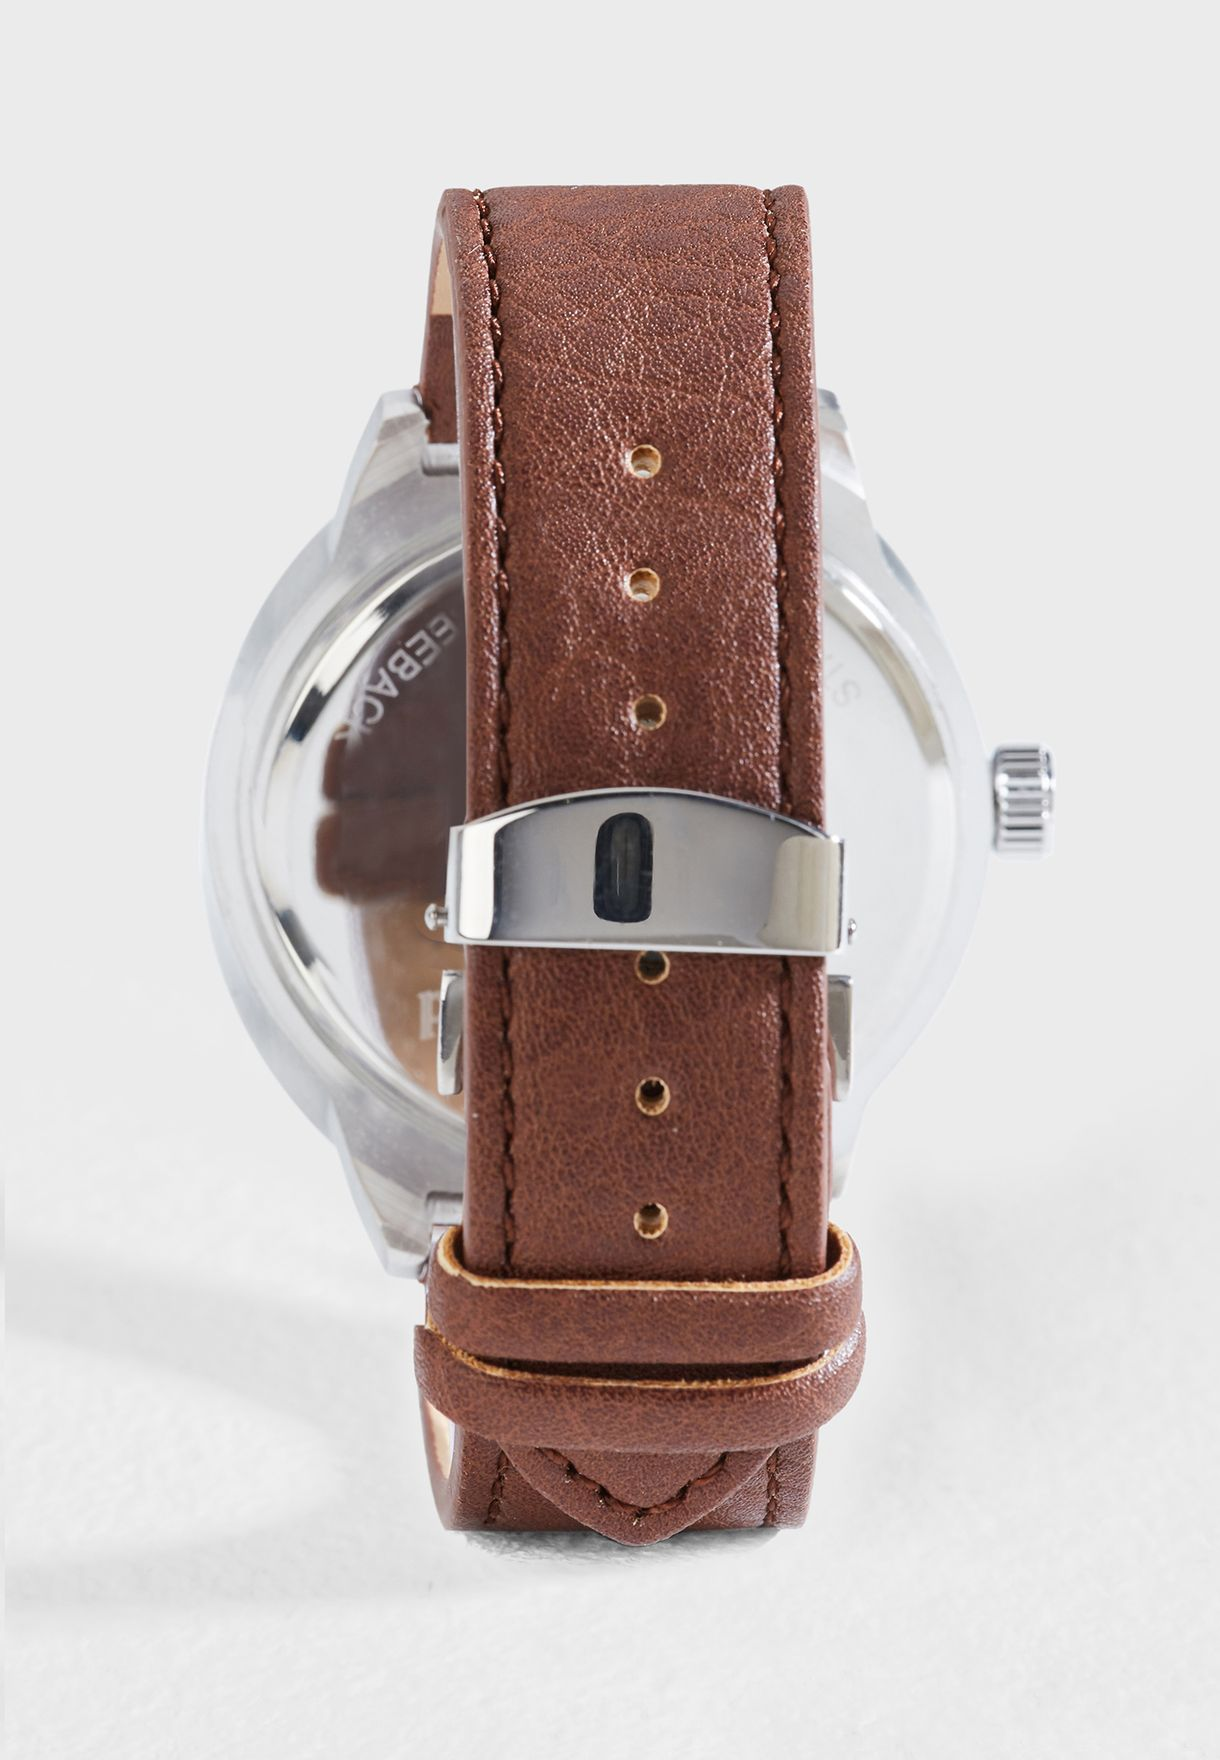 Deployment Clasp Strap Analogue Watch